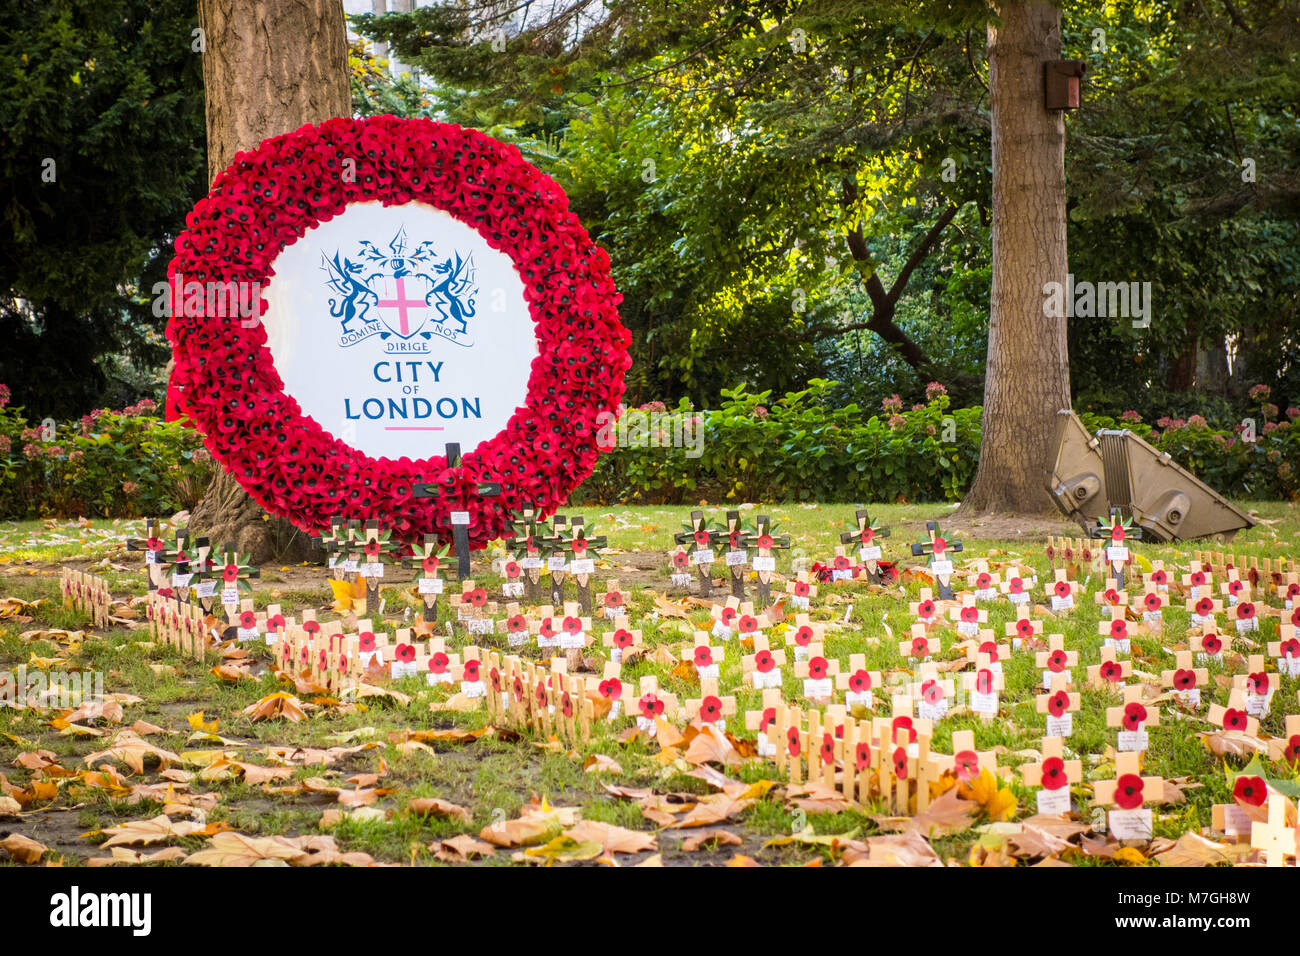 Remembrance day poppies and wreath in St Paul's Churchyard, City of London, UK - Stock Image